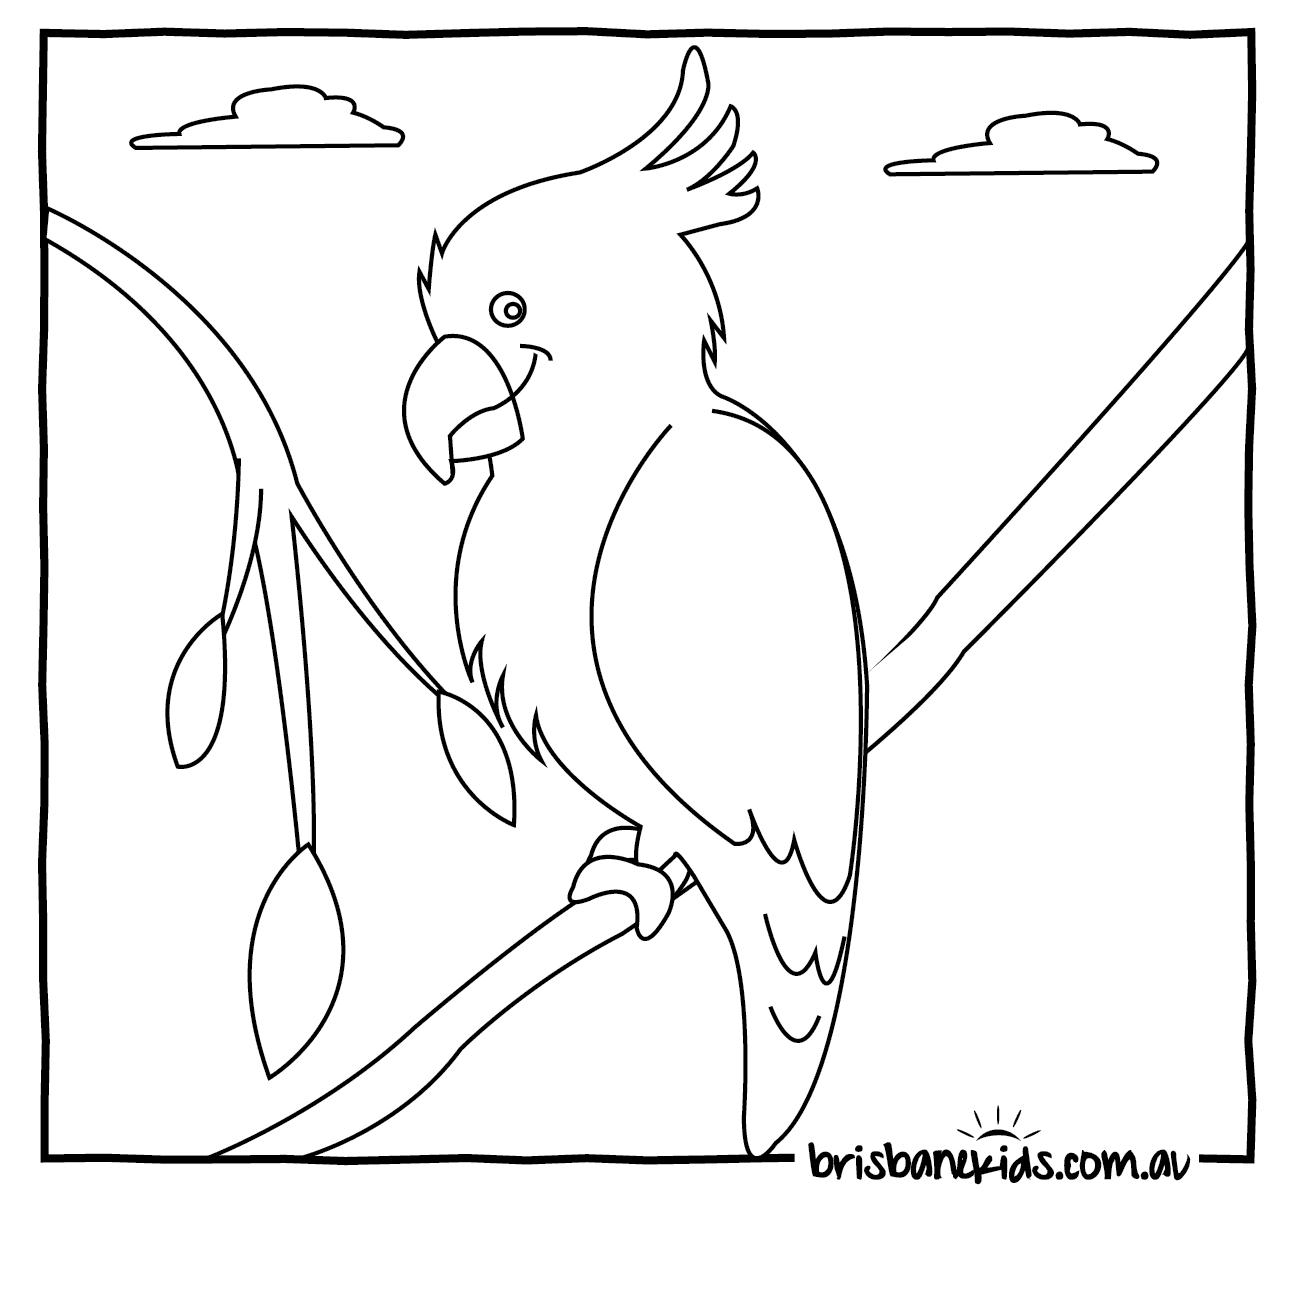 printable pictures of australia australian animals colouring pages animal coloring pages printable pictures australia of